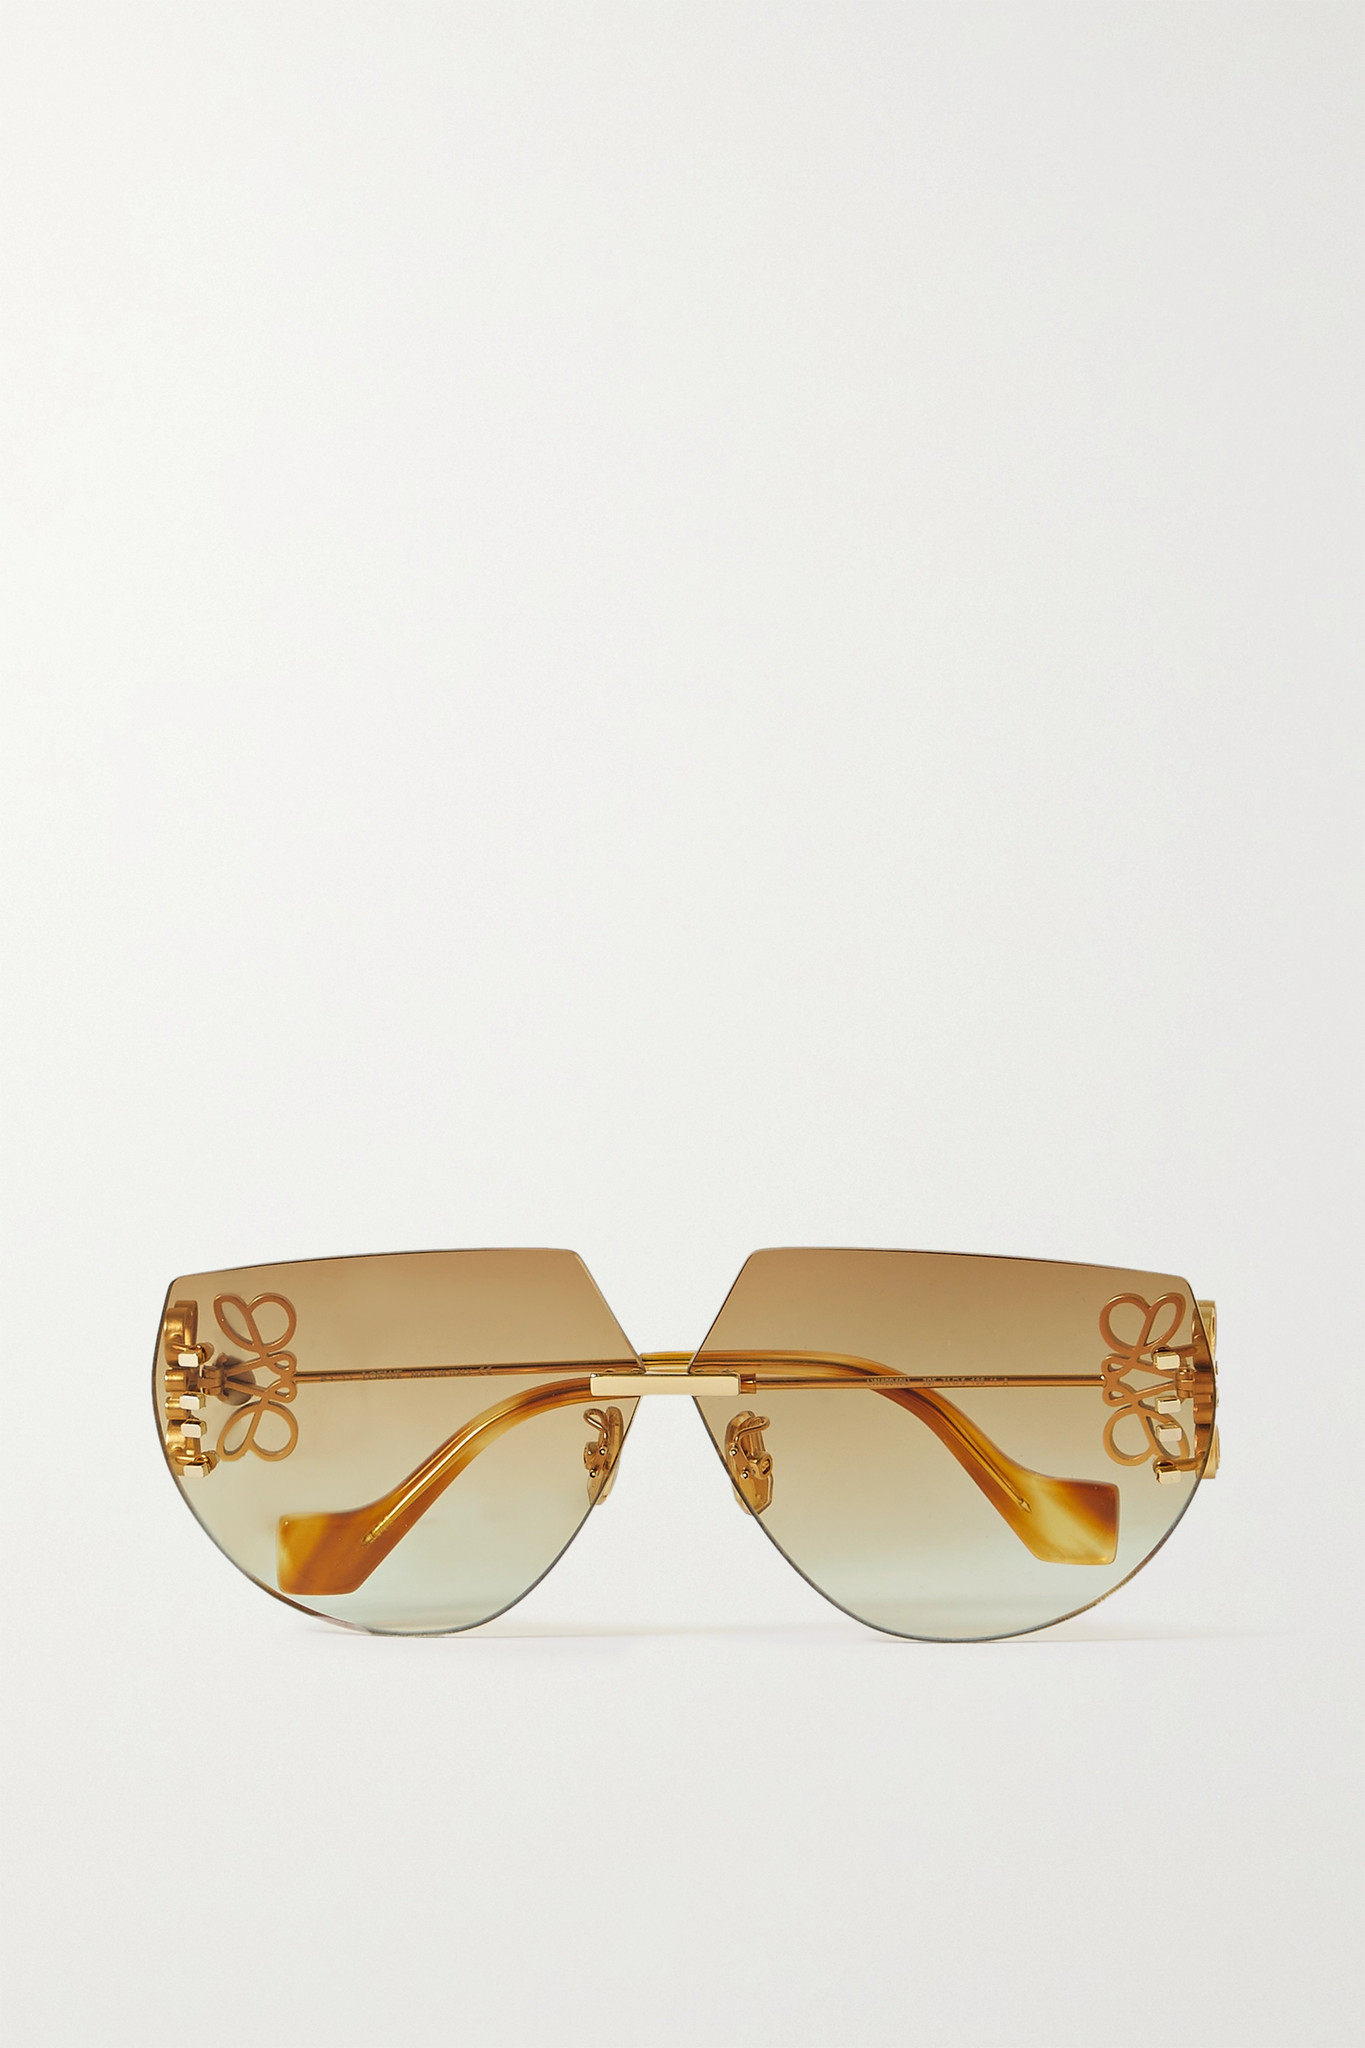 LOEWE - Oversized D-frame Gold-tone Sunglasses - Brown - one size